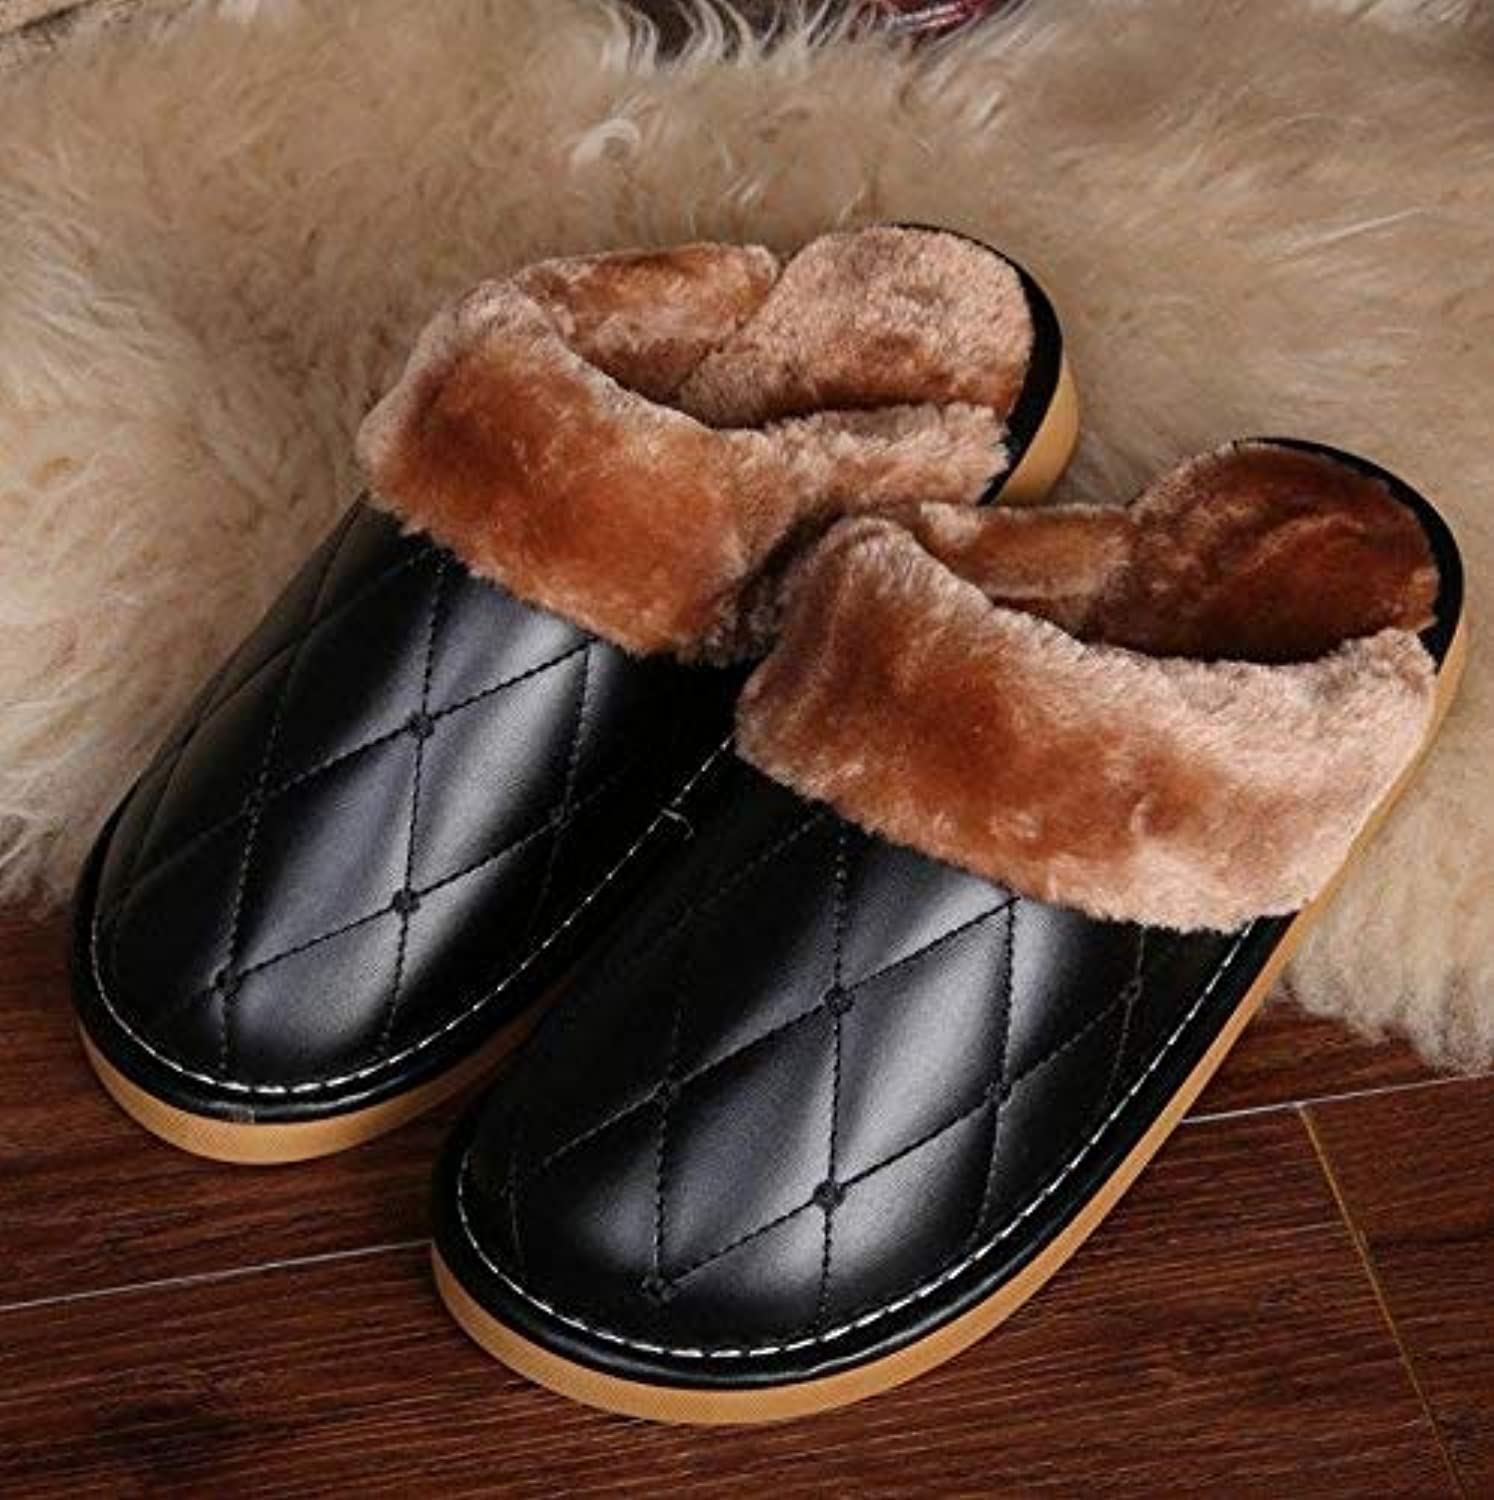 JaHGDU Men's Cotton Slippers Indoors to Keep Warm in Autumn and Winter at Home Faux-Leather Slippers for Men